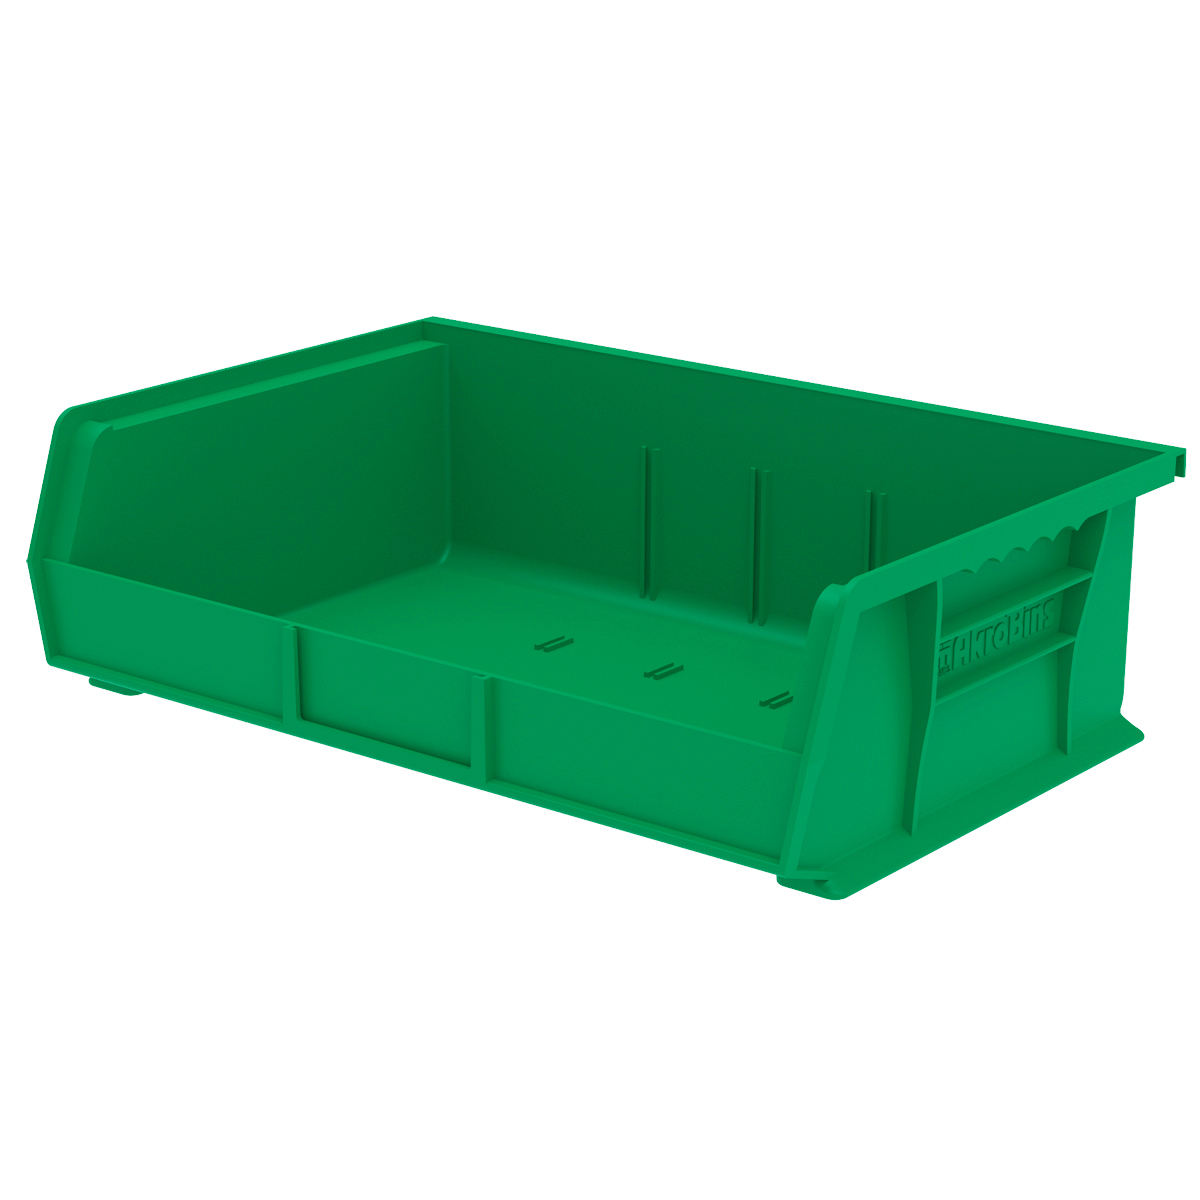 AkroBin 10-7/8 x 16-1/2 x 5, Green (30255GREEN).  This item sold in carton quantities of 6.